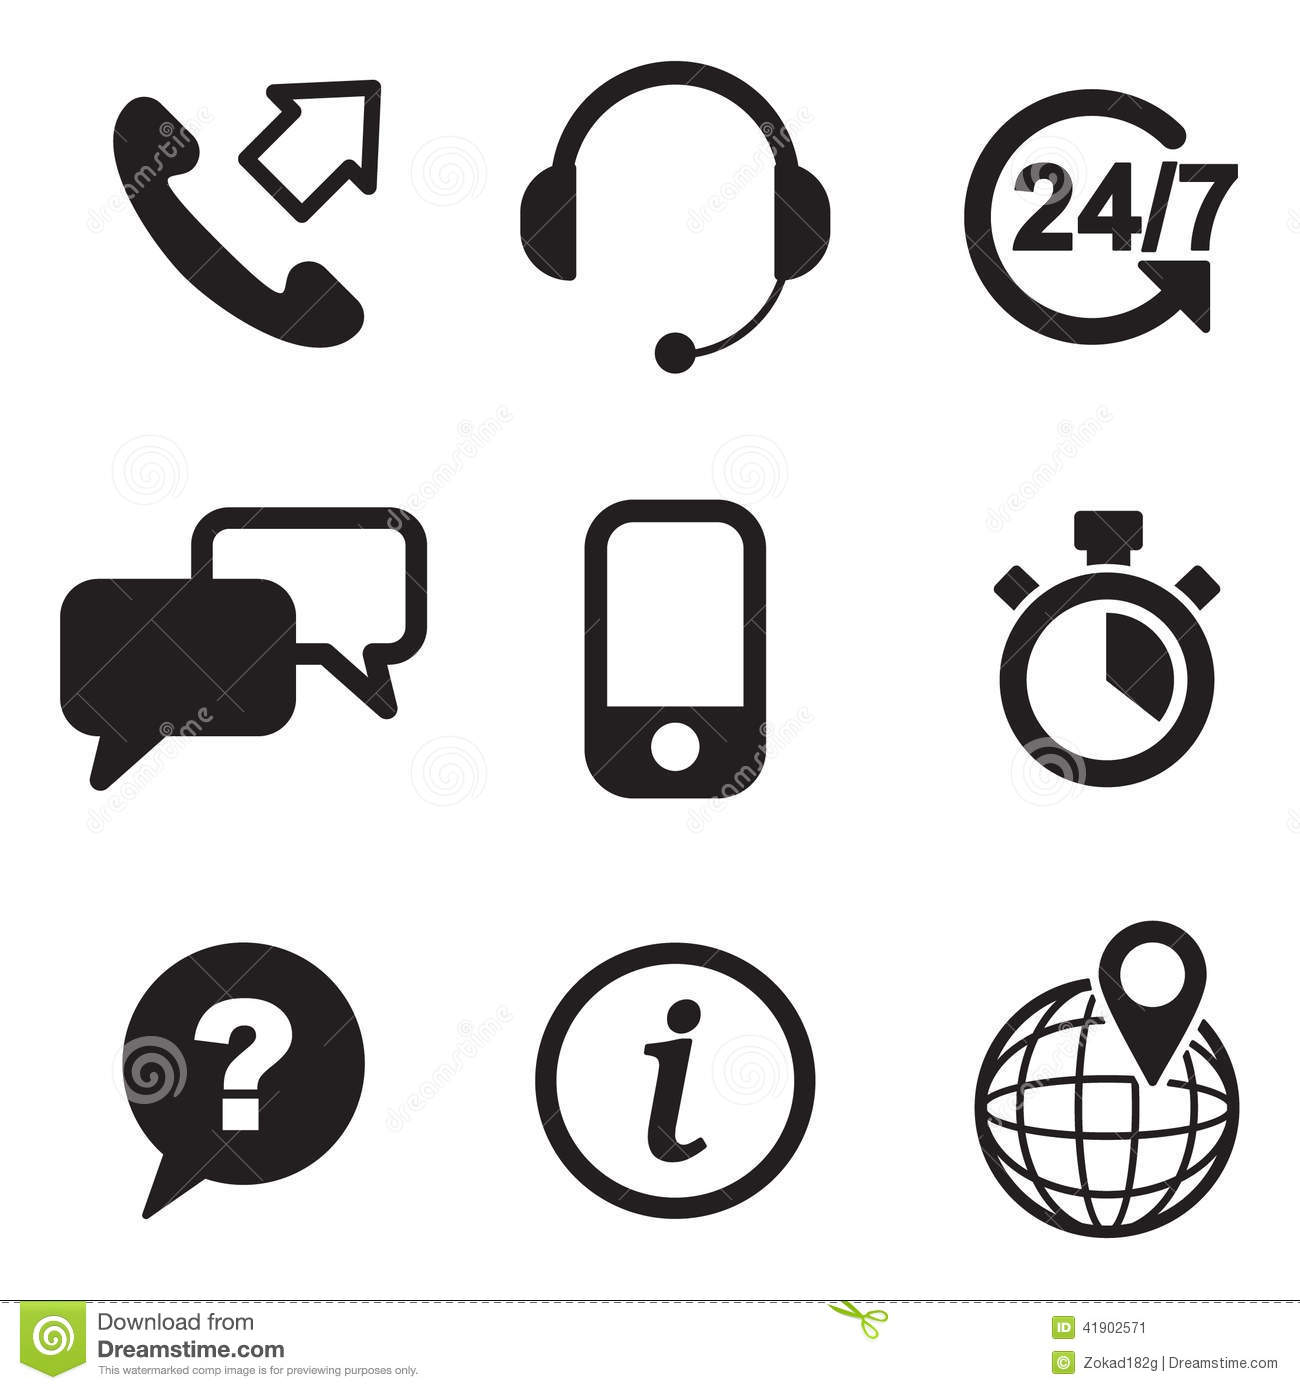 customer service icons stock vector image 41902571. Black Bedroom Furniture Sets. Home Design Ideas